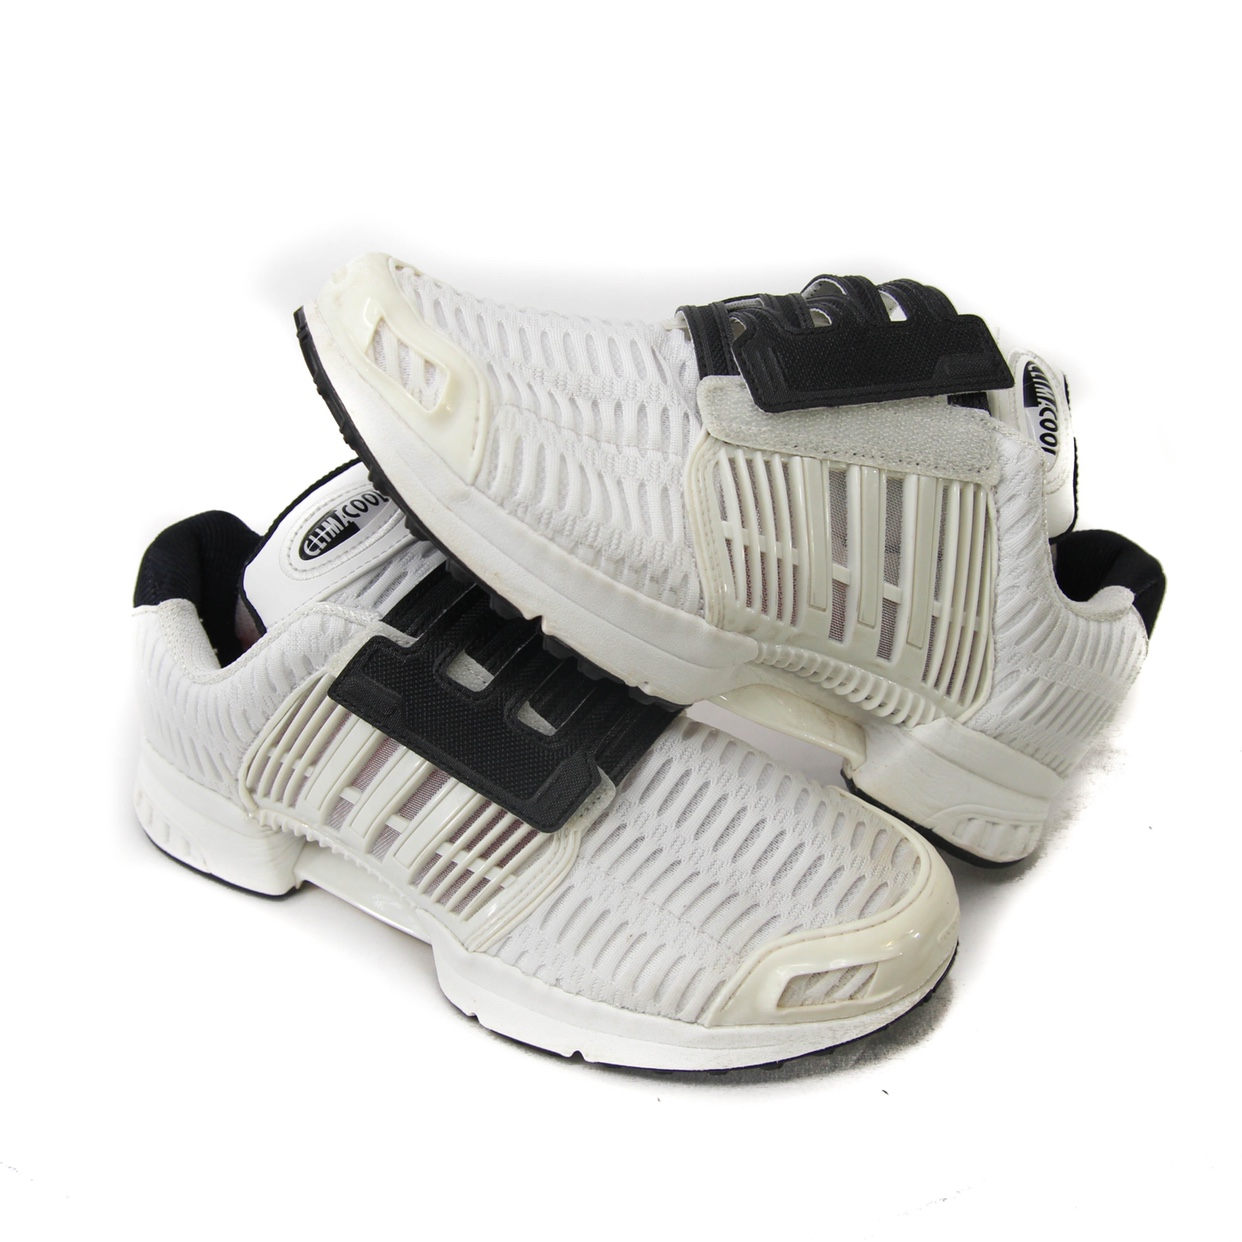 Adidas ADV 02-16 Climacool sneaker. These things are...